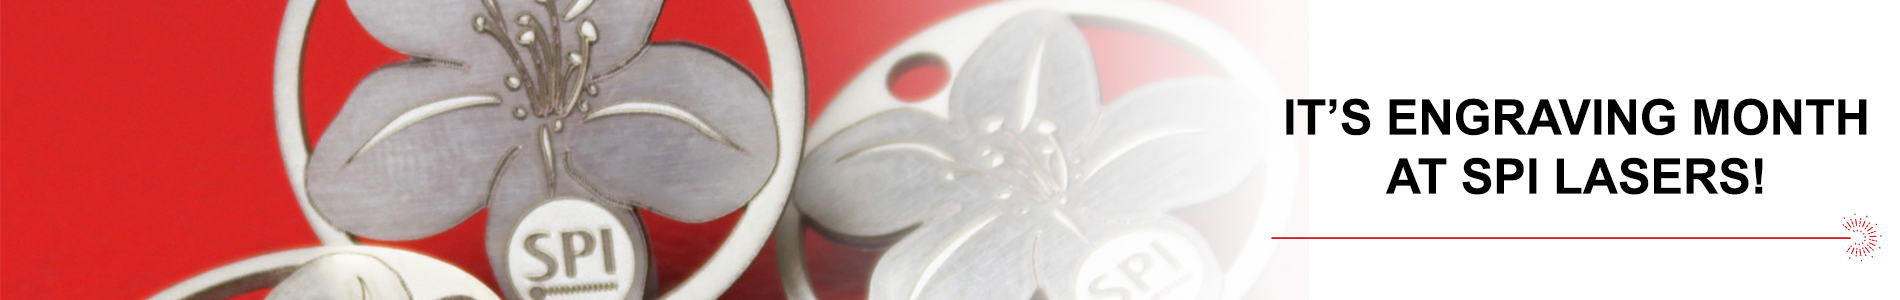 2020 Engraving Month Web Article Banner_2